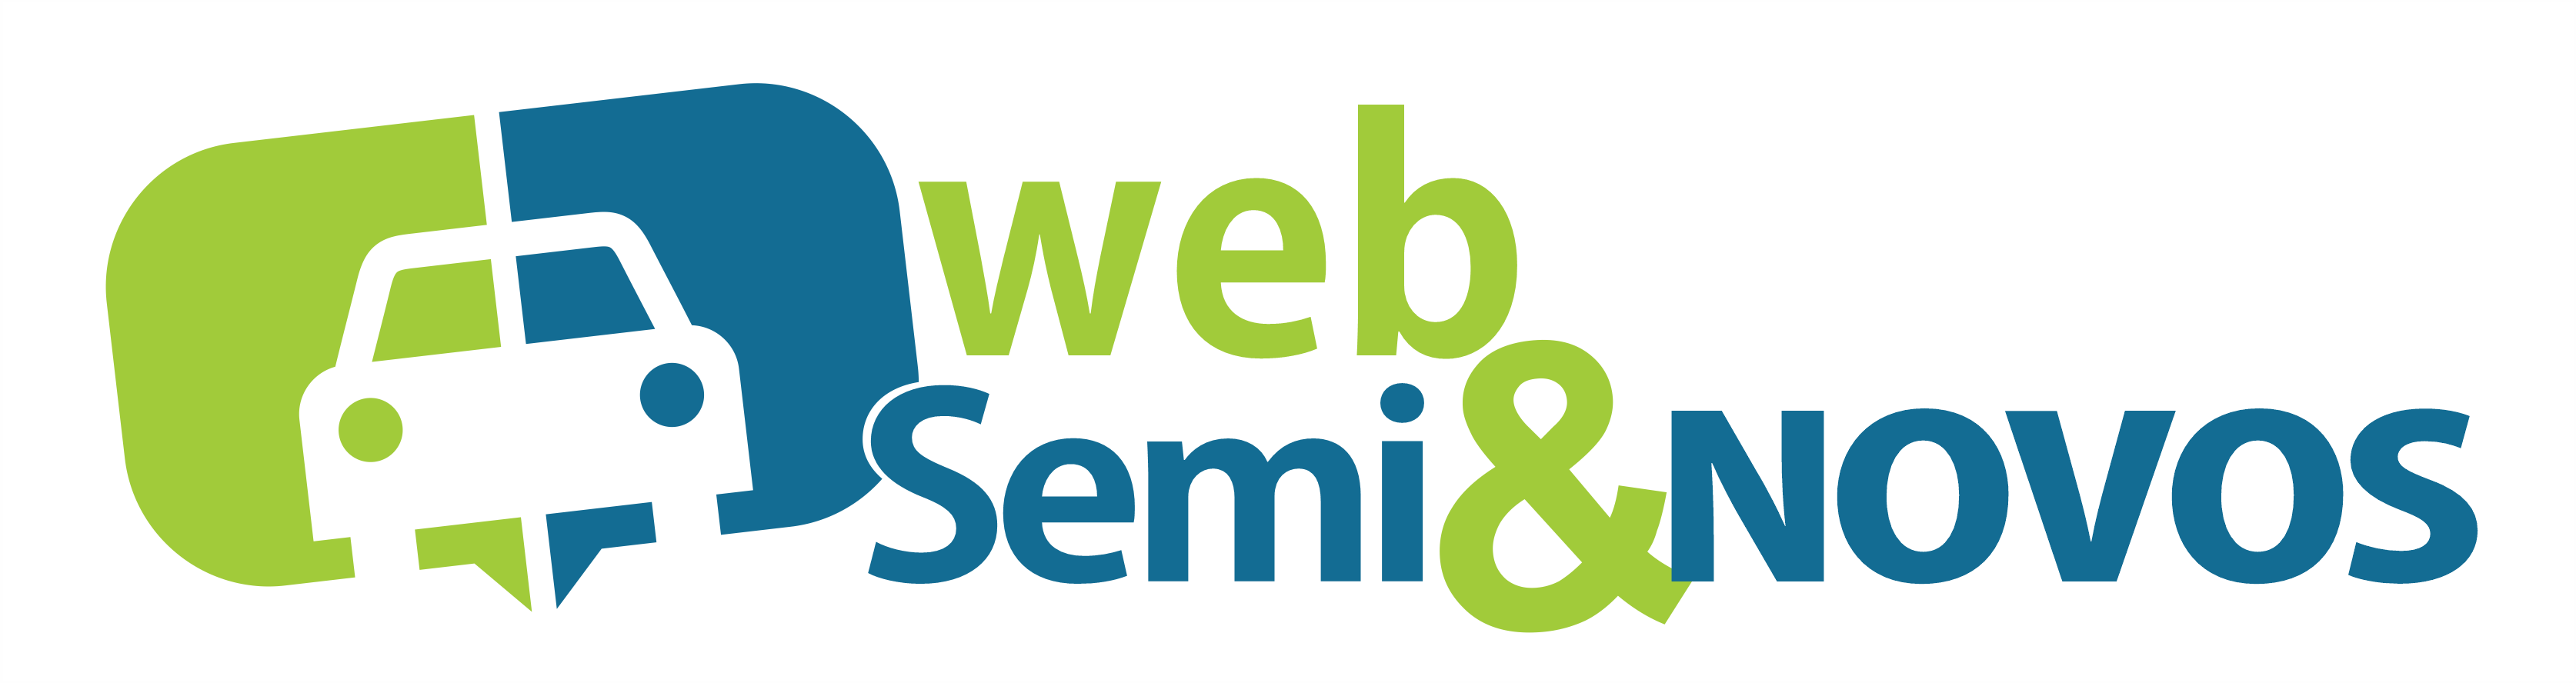 Blog WebSeminovos